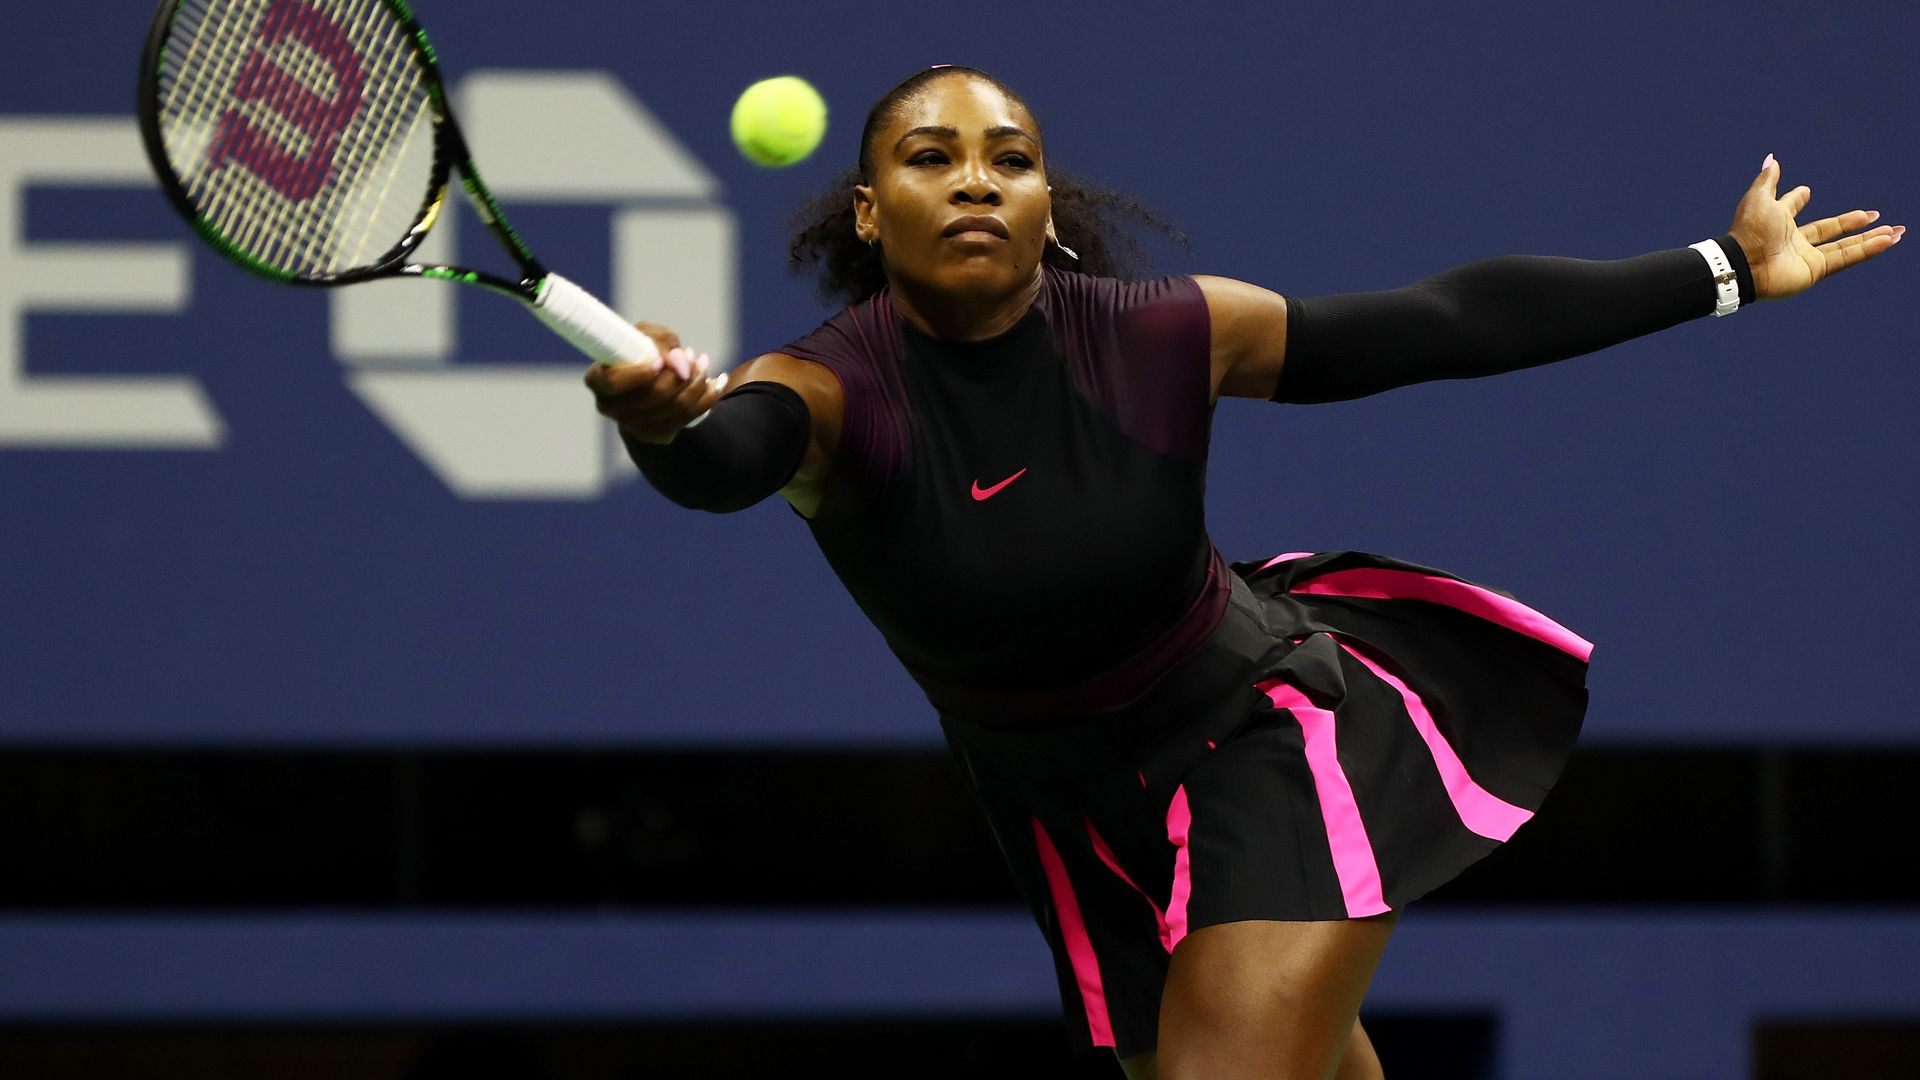 U.S. Open 2016: Serena Williams upset by Karolina Pliskova in ...